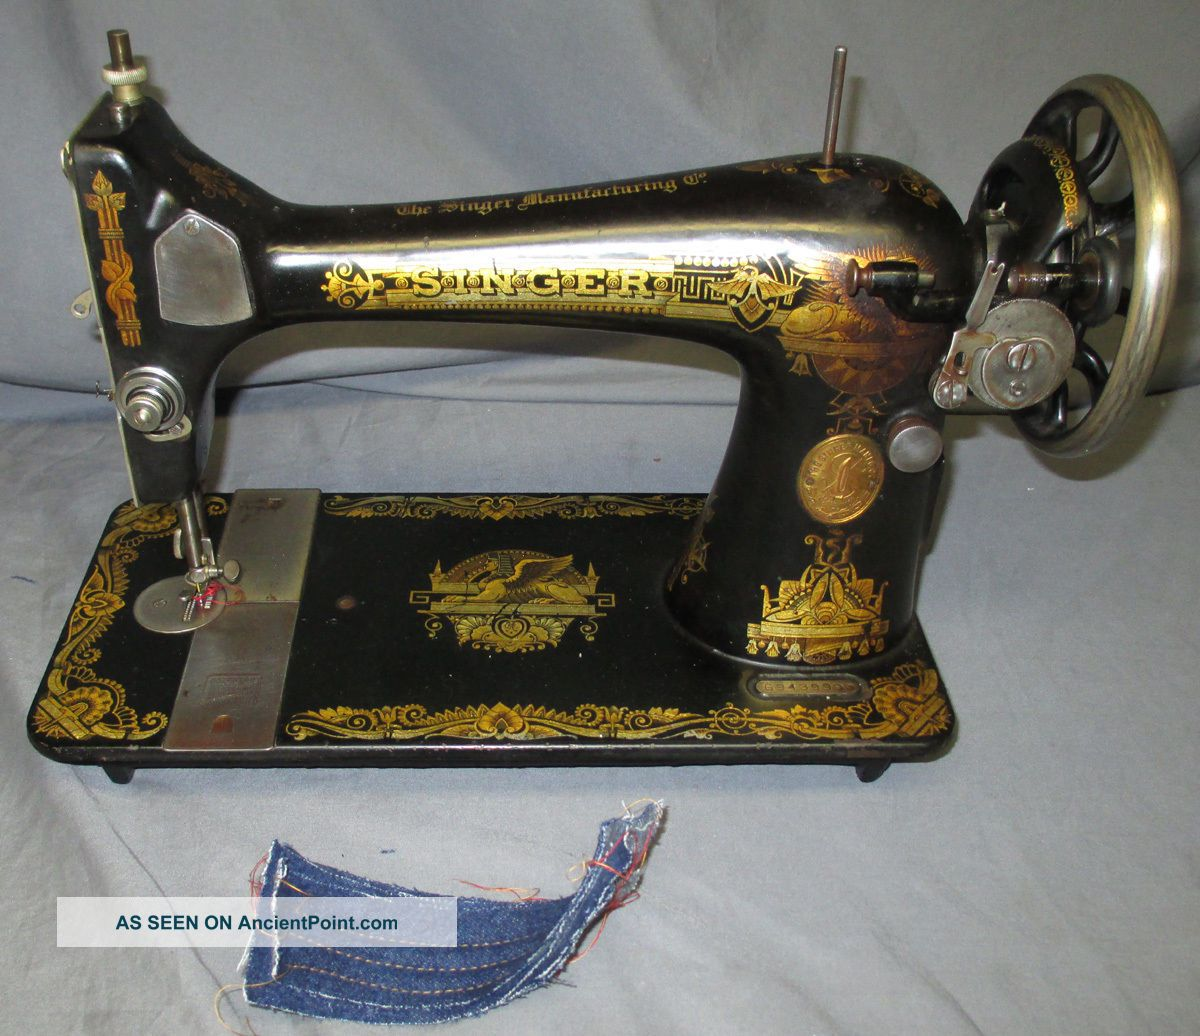 Serviced Antique 1922 Singer 127 Sphinx Treadle Sewing Machine Worx Video Sewing Machines photo